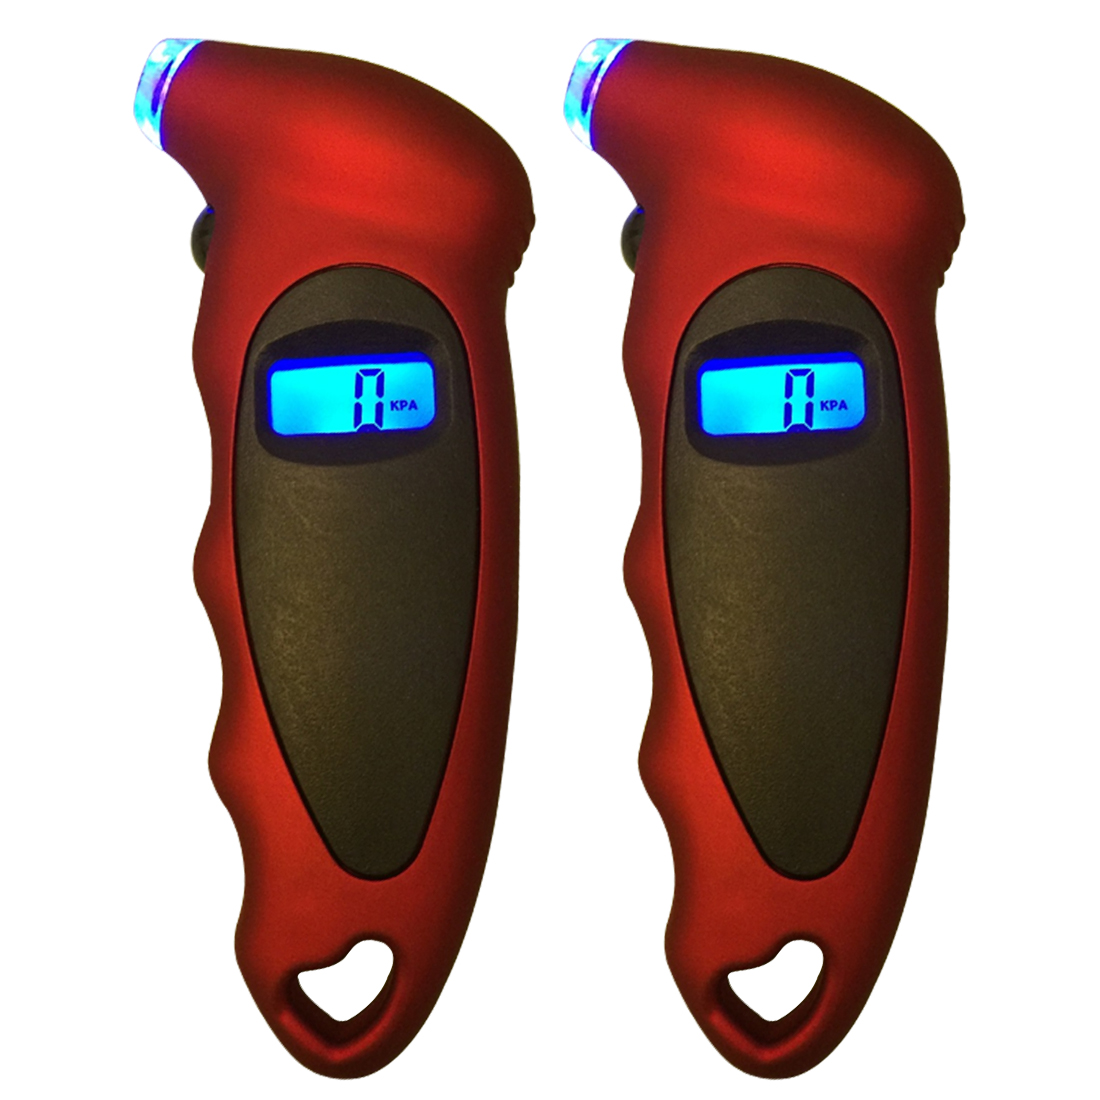 Hot Car Motorcycle Bike Mini Digital Tire Gauge Tire Diagnostic LCD Display Car Digital Tire Pressure Tool Gauge 8 in 1 1 2 digital display tire pressure gauge black 3 x aaa battery